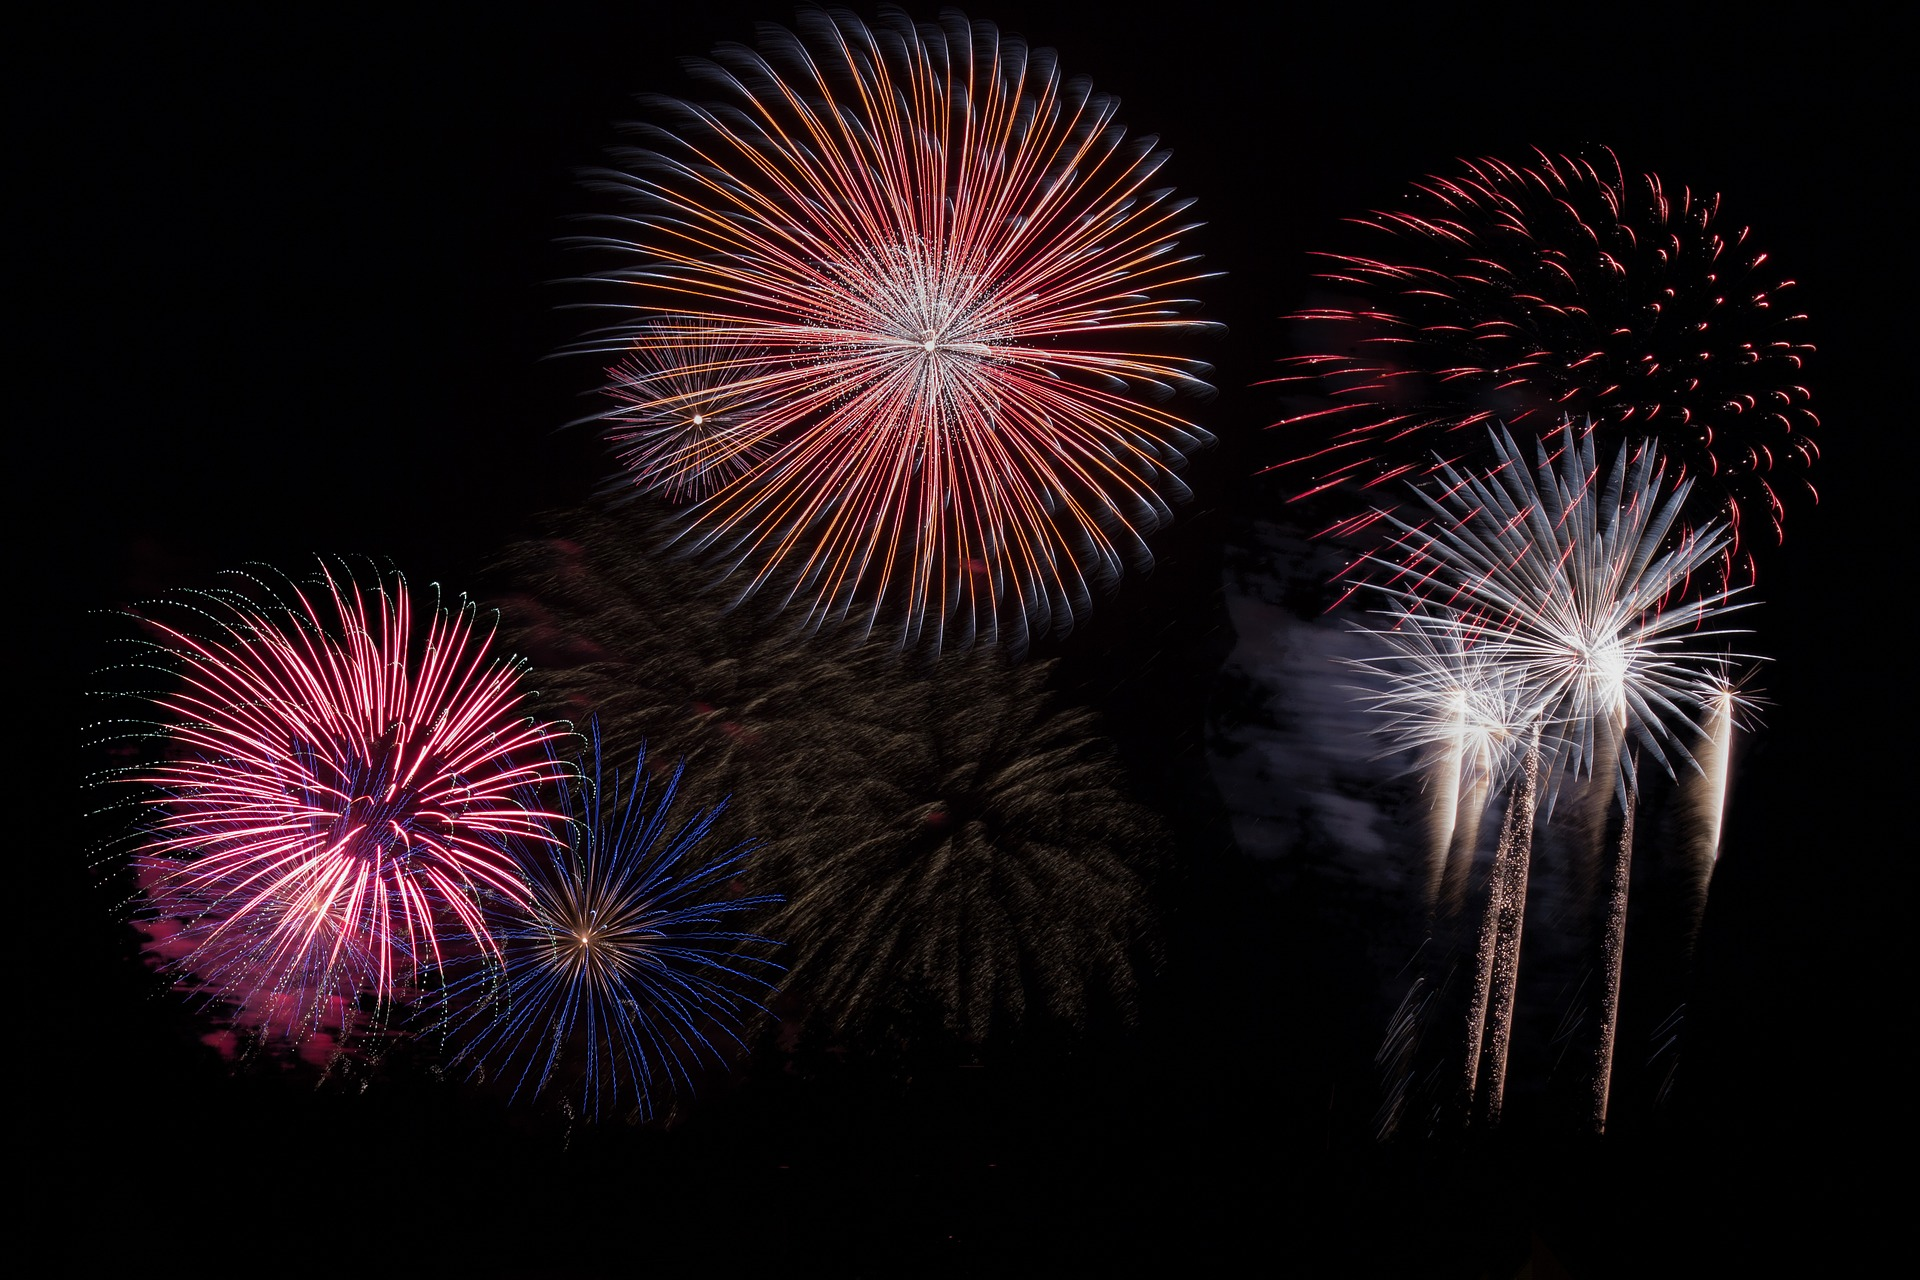 One year in Invisalign braces - image of fireworks.